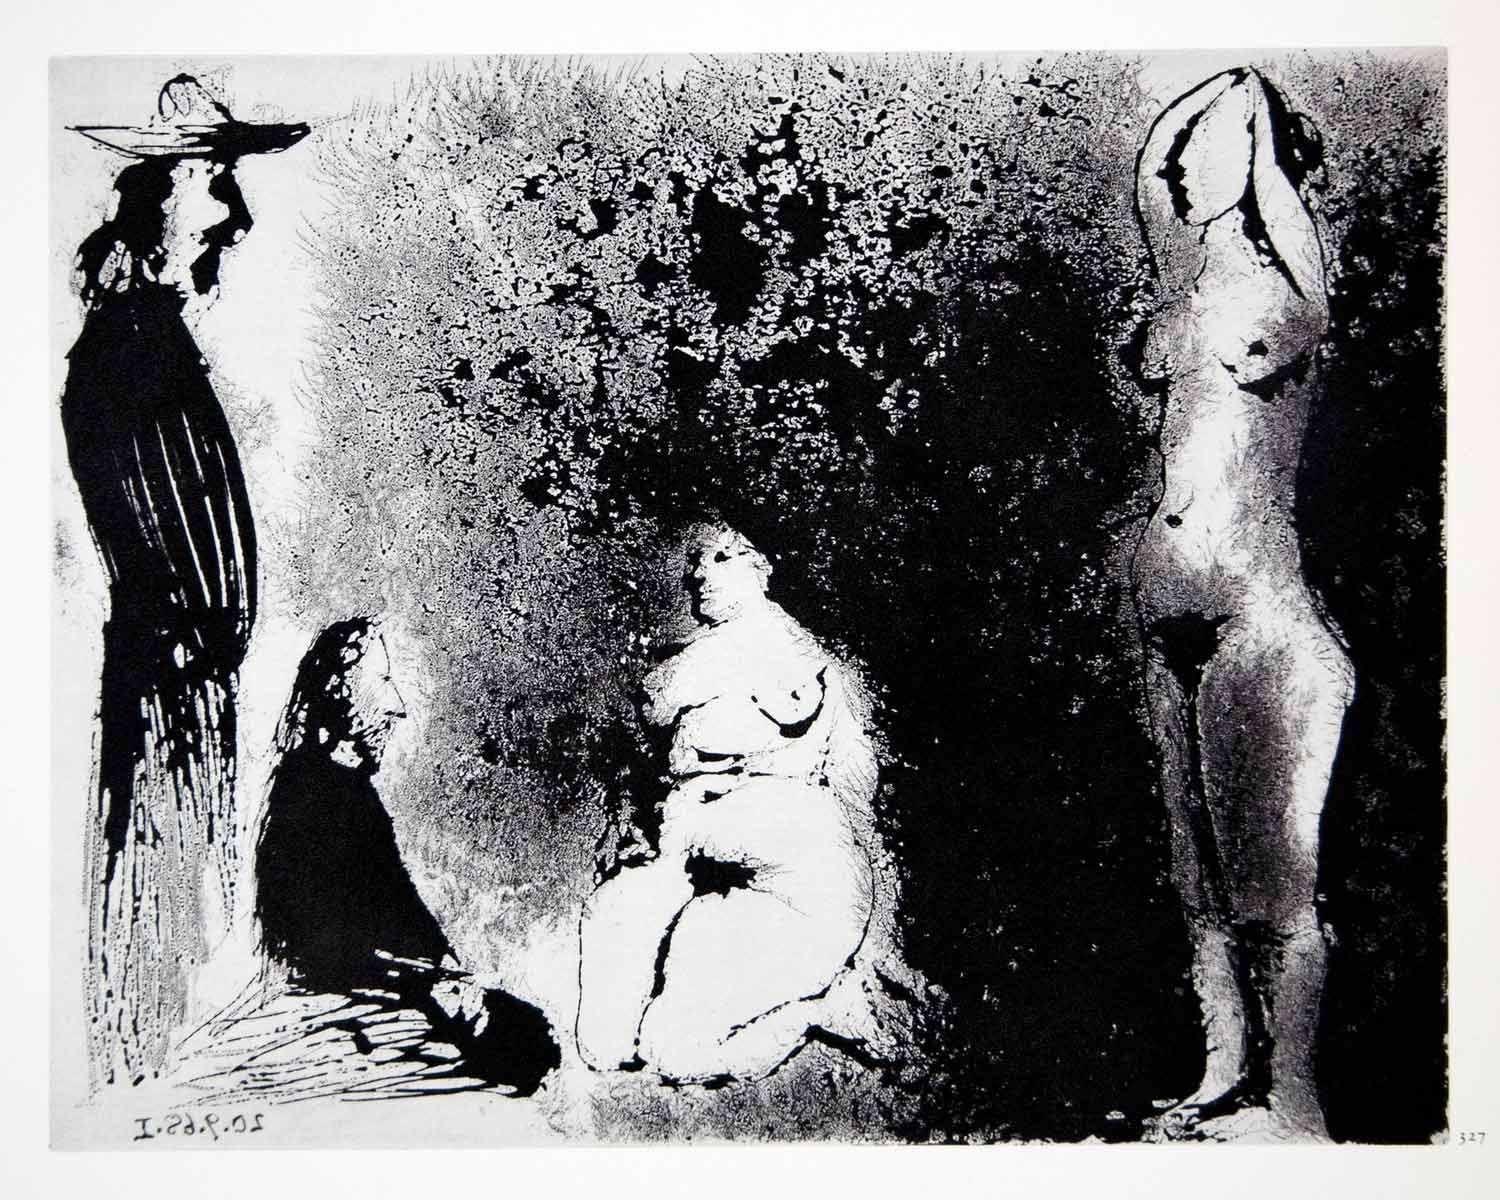 1970 Heliogravure Picasso Nudes Standing Kneeling Aquatint Abstract Art P347B